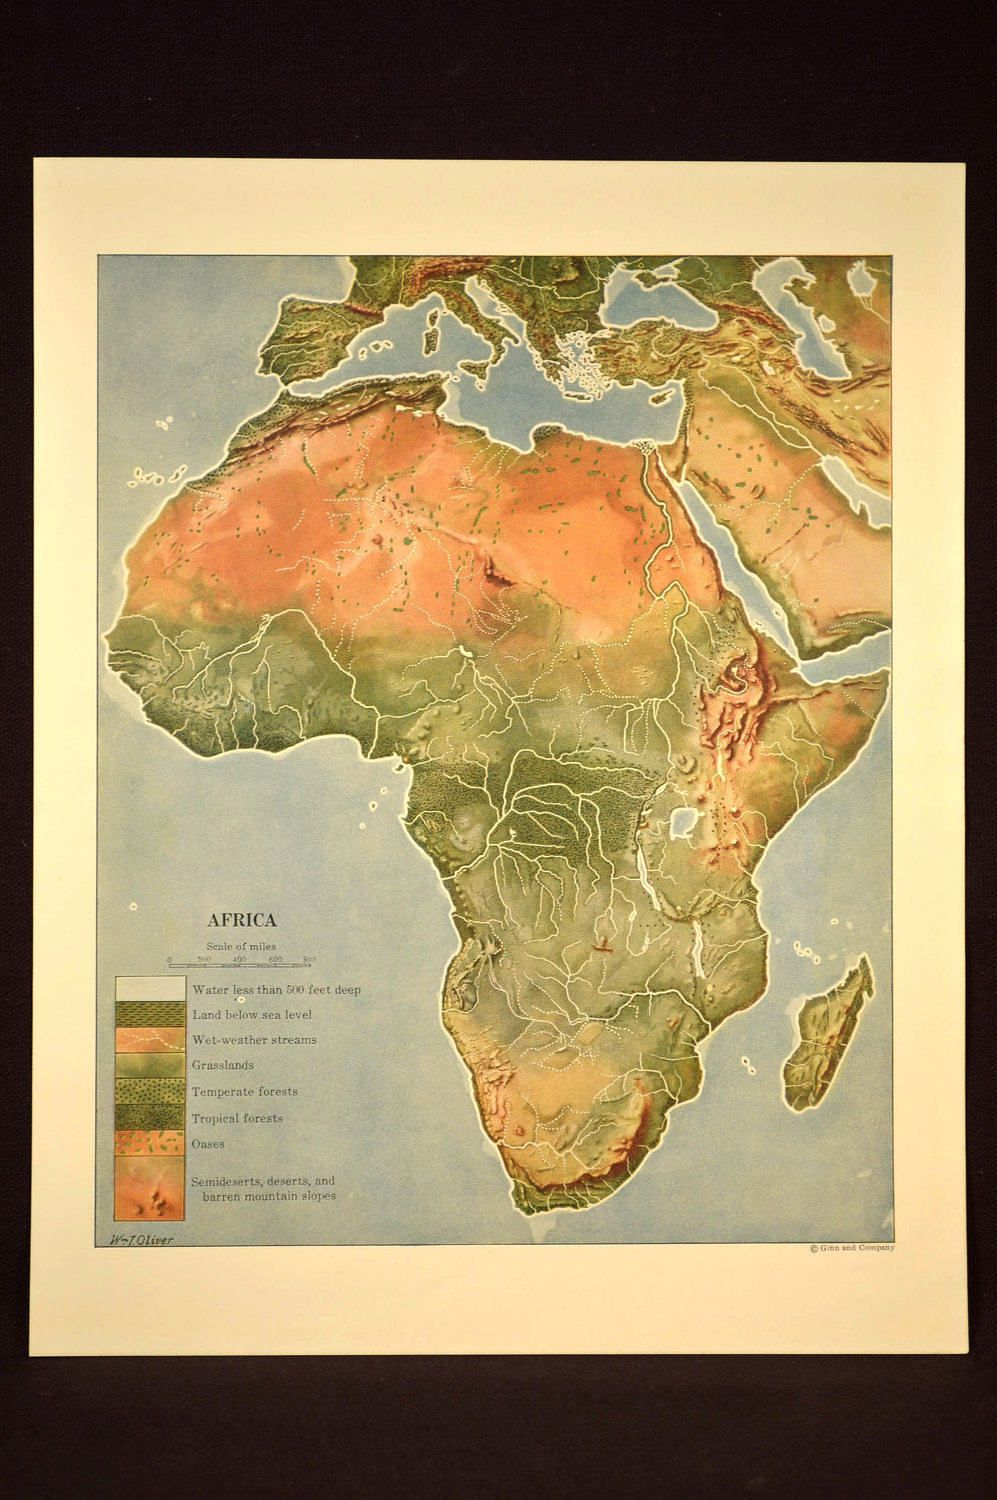 Africa Terrain Map Africa Map Africa Physical Terrain Map Colorful Colored   Africa